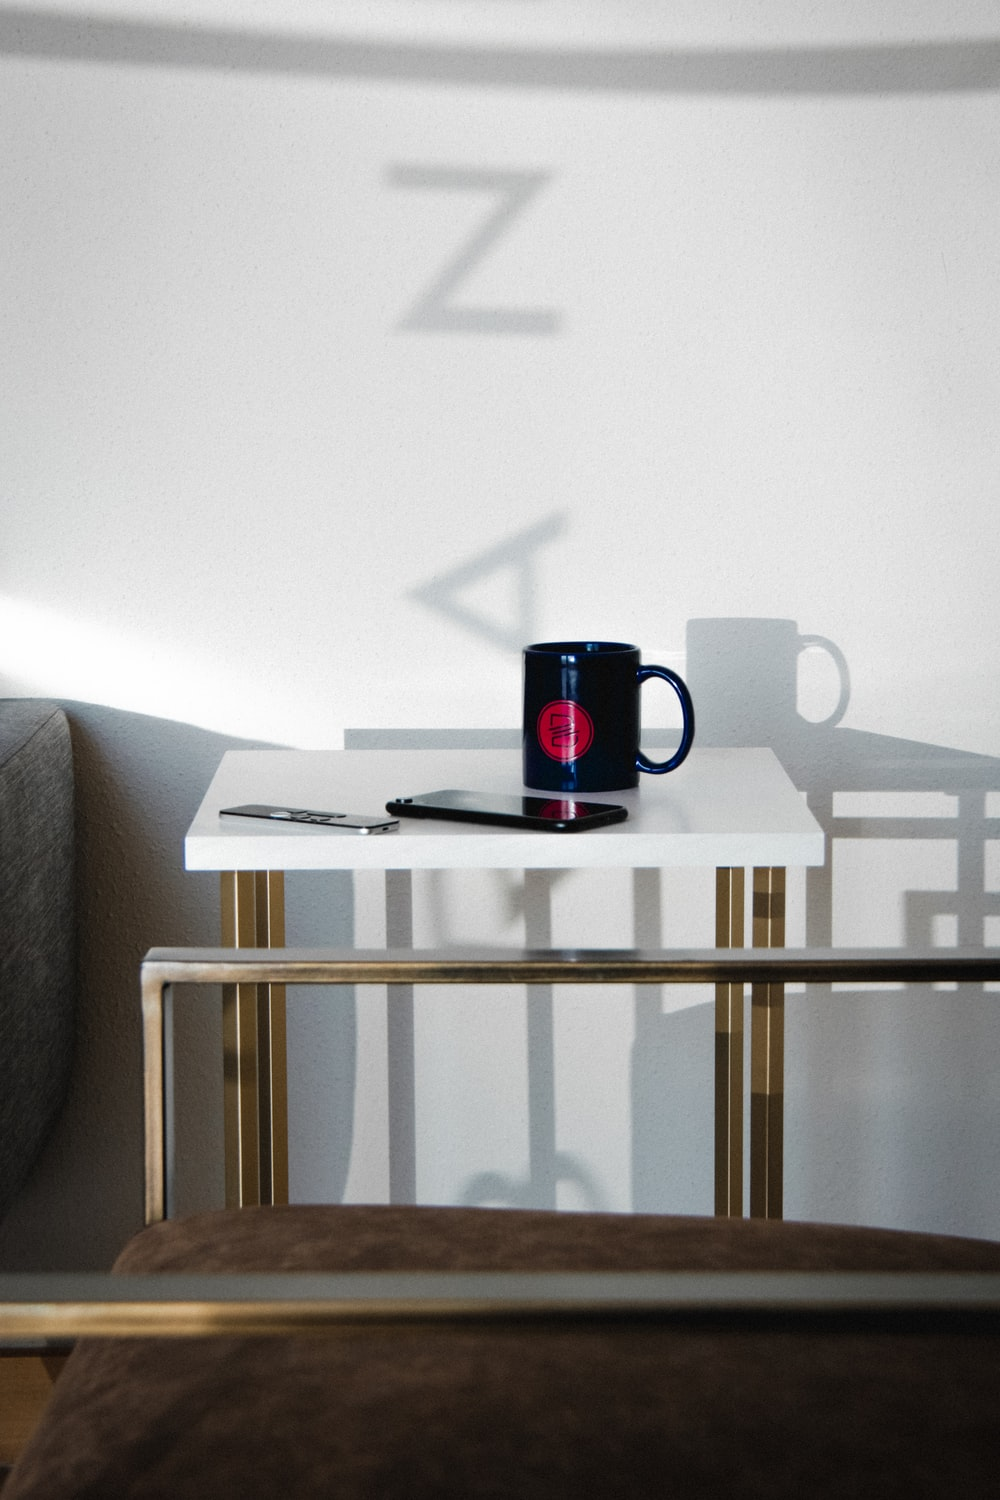 black and red ceramic mug on white wooden table